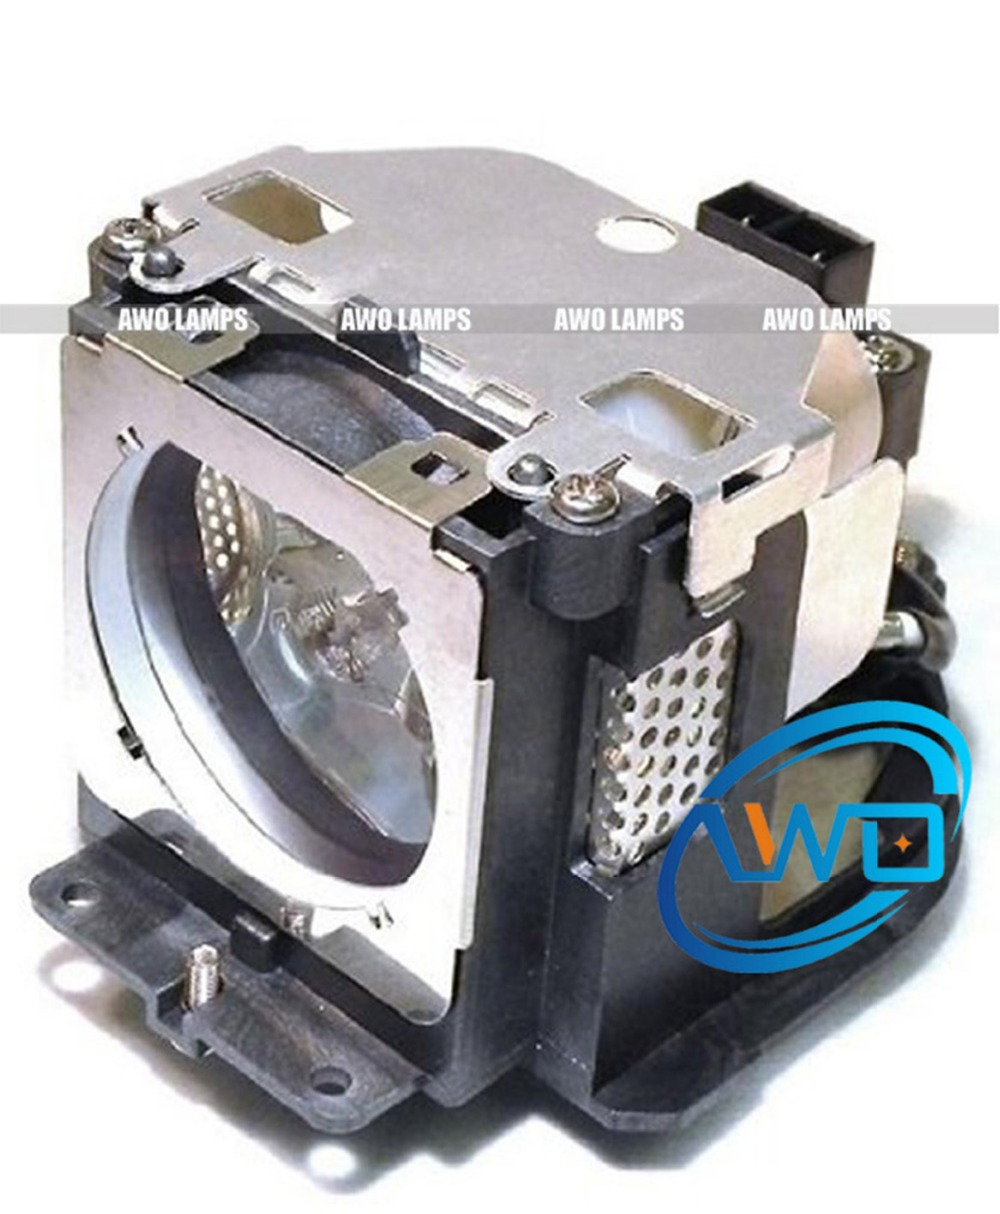 AWO Quality Compatible Projector Lamp inside POA-LMP103 with Housing for SANYO PLC-XU100/XU110/EIKI LC-XB40/XB40N plc xm150 plc xm150l plc wm5500 plc zm5000l poa lmp136 for sanyo compatible projector lamp bulbs with housing